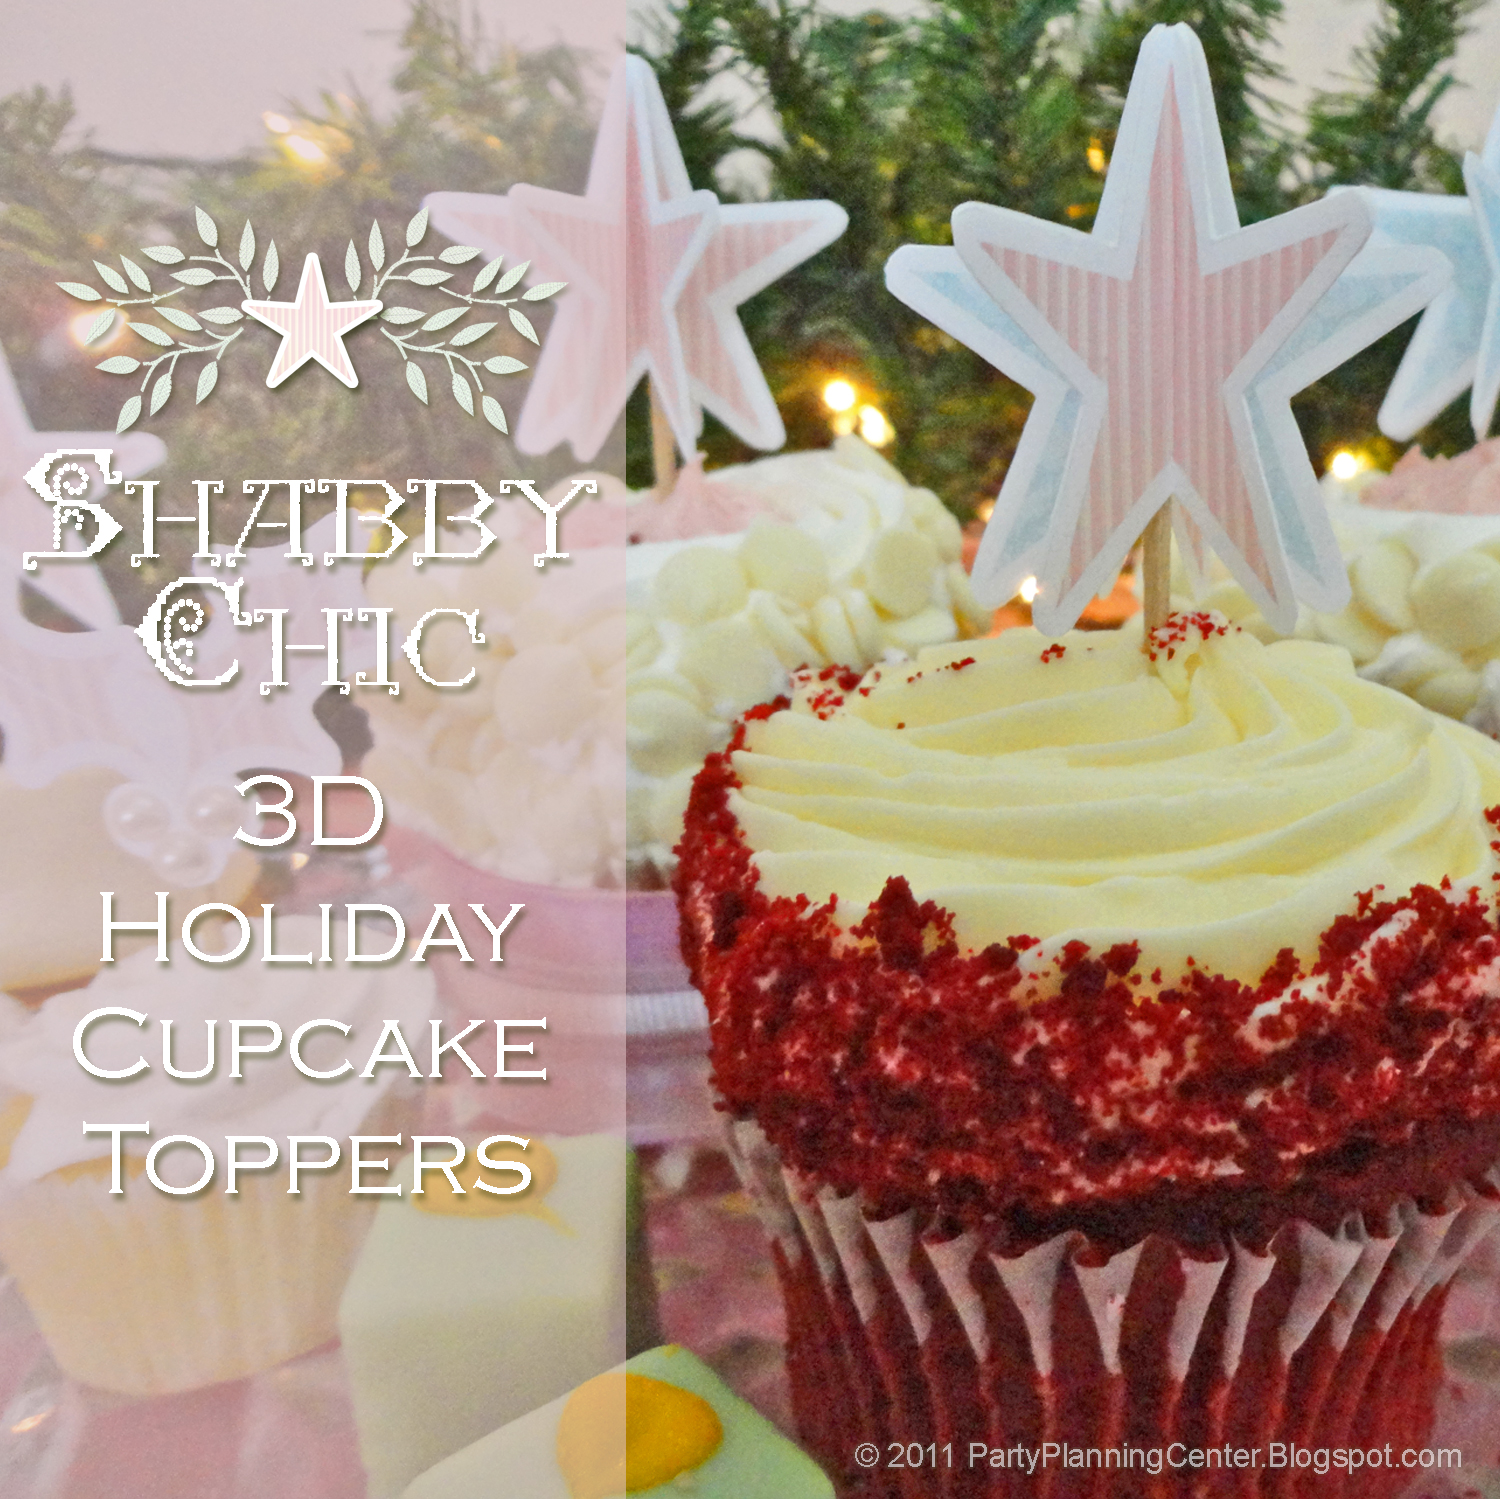 These Paper Holiday Cake Or Cupcake Toppers Hors D Oeuvre Etizer Party Picks Come In A Variety Of Pastel Designs That Match My Printable